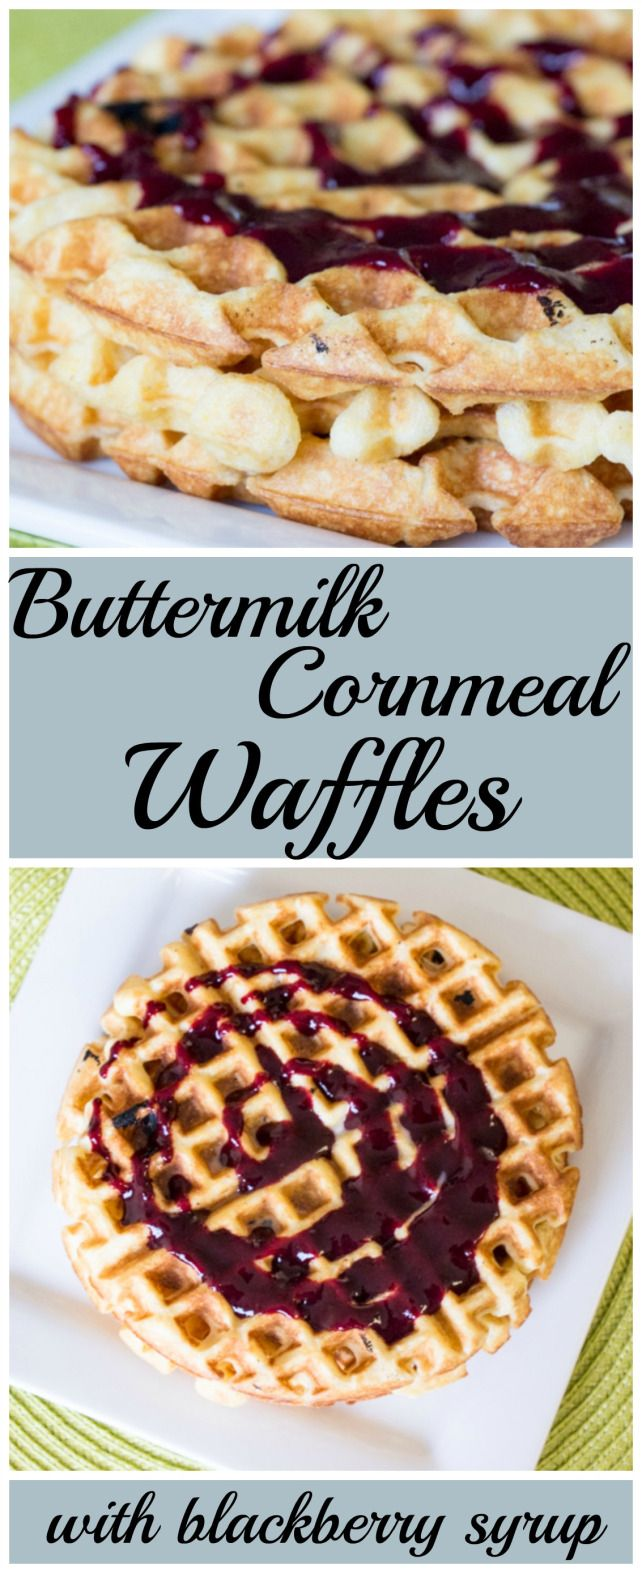 Buttermilk Cornmeal Waffles with Blackberry Syrup for #WaffleWeek2016 ...